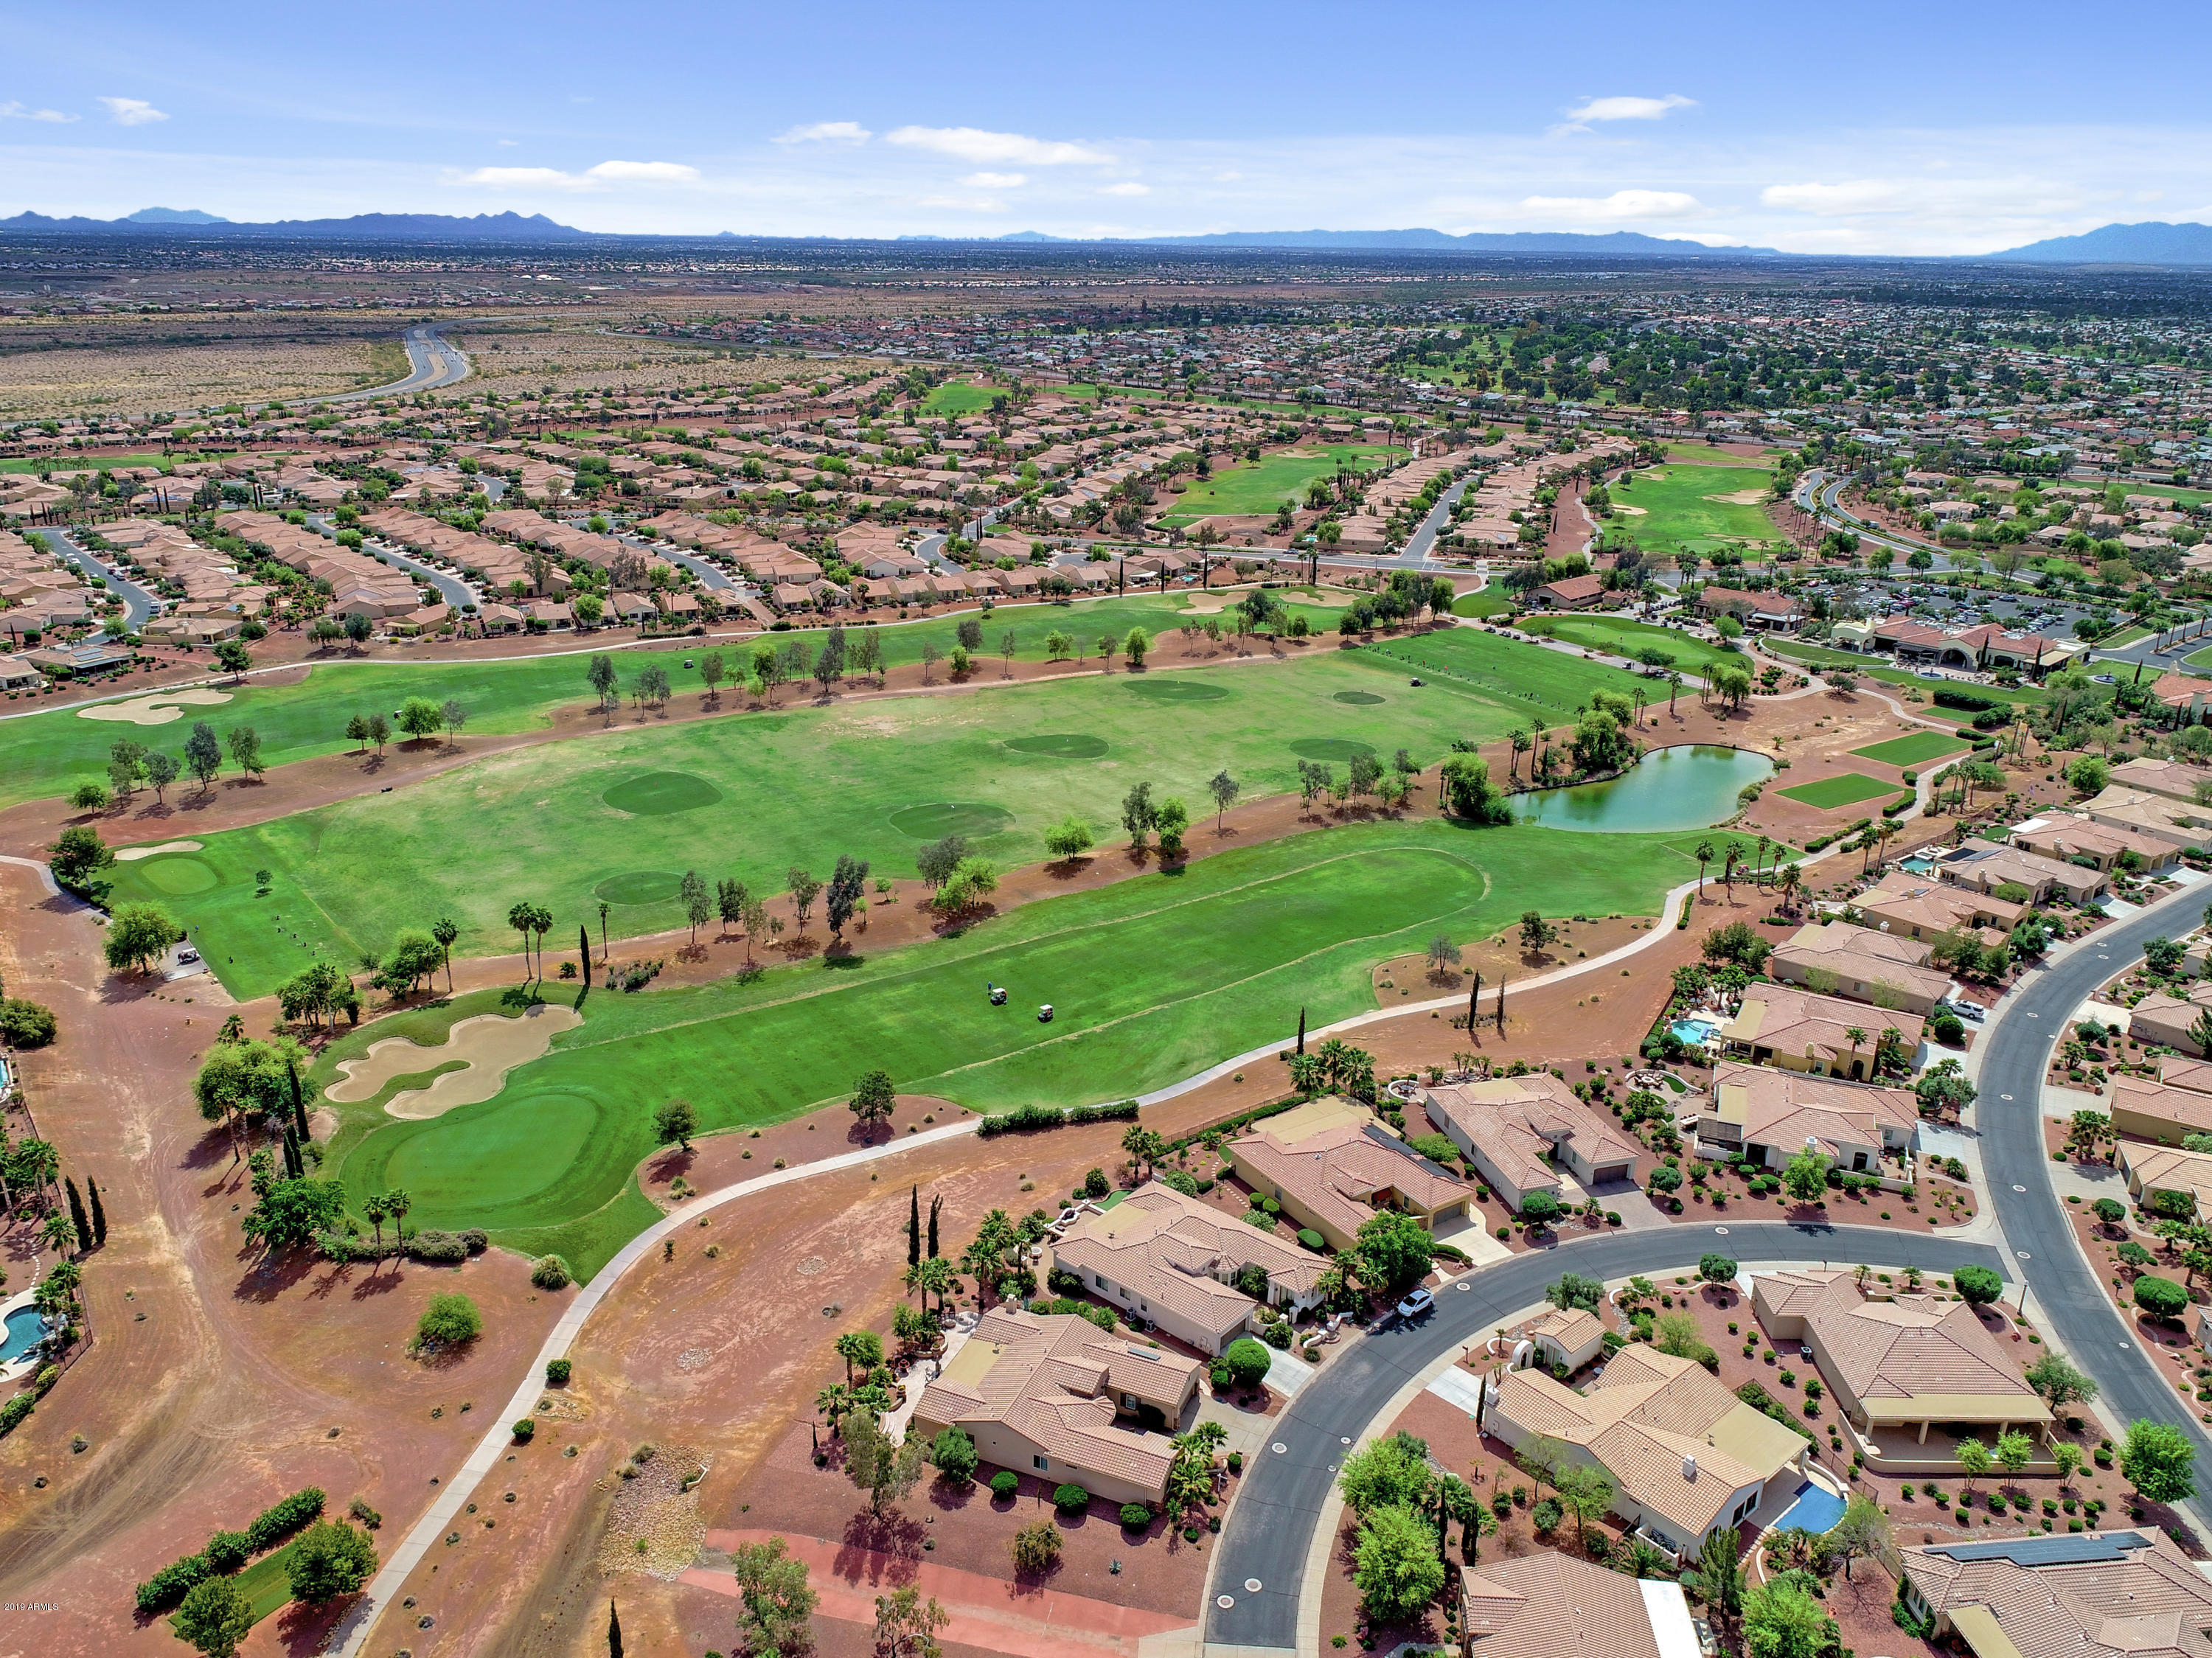 MLS 5906640 13232 W MICHELTORENA Drive, Sun City West, AZ 85375 Sun City West AZ Tennis Court